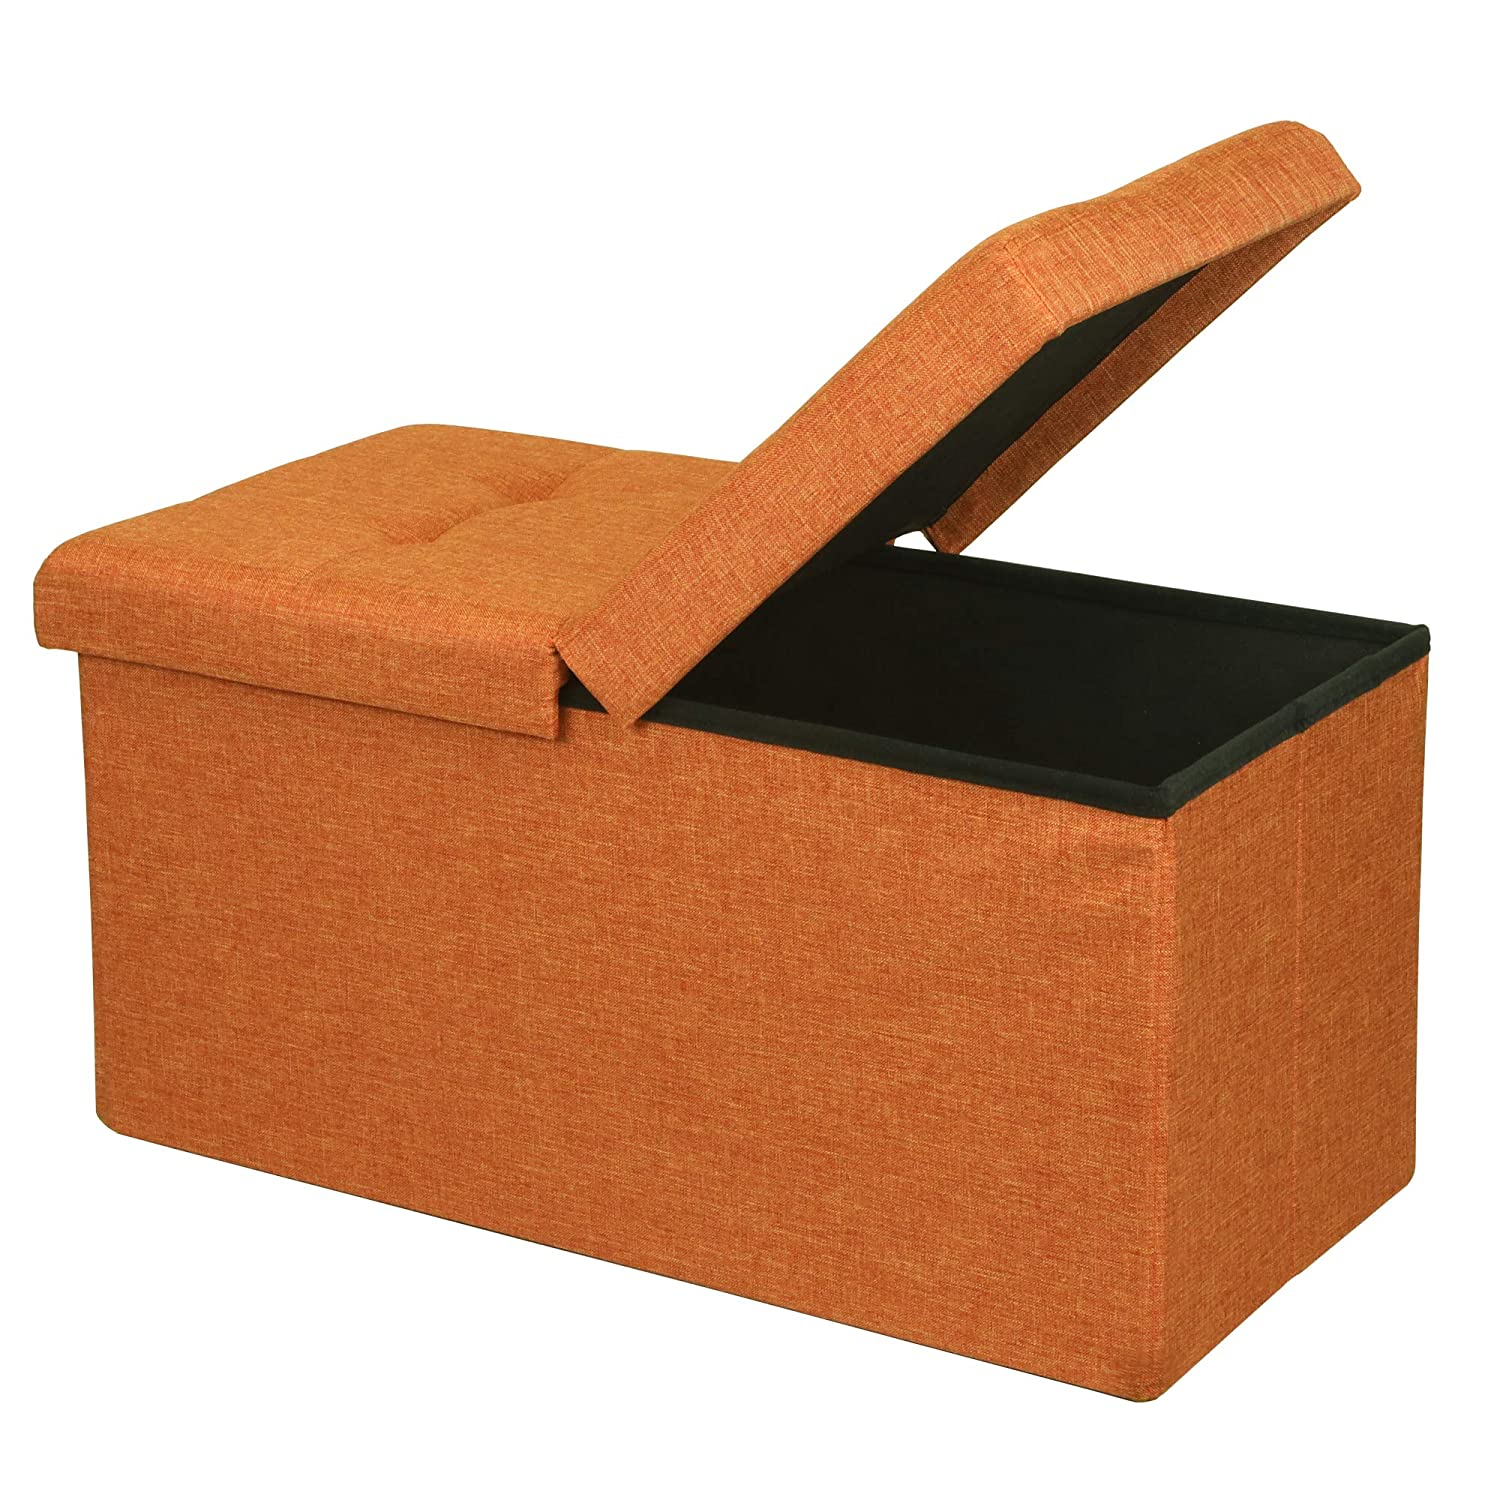 """Otto & Ben 30"""" Storage Ottoman - Folding Toy Box Chest with SMART LIFT Top, Upholstered Tufted Ottomans Bench Foot Rest for Bedroom, Amber Orange"""